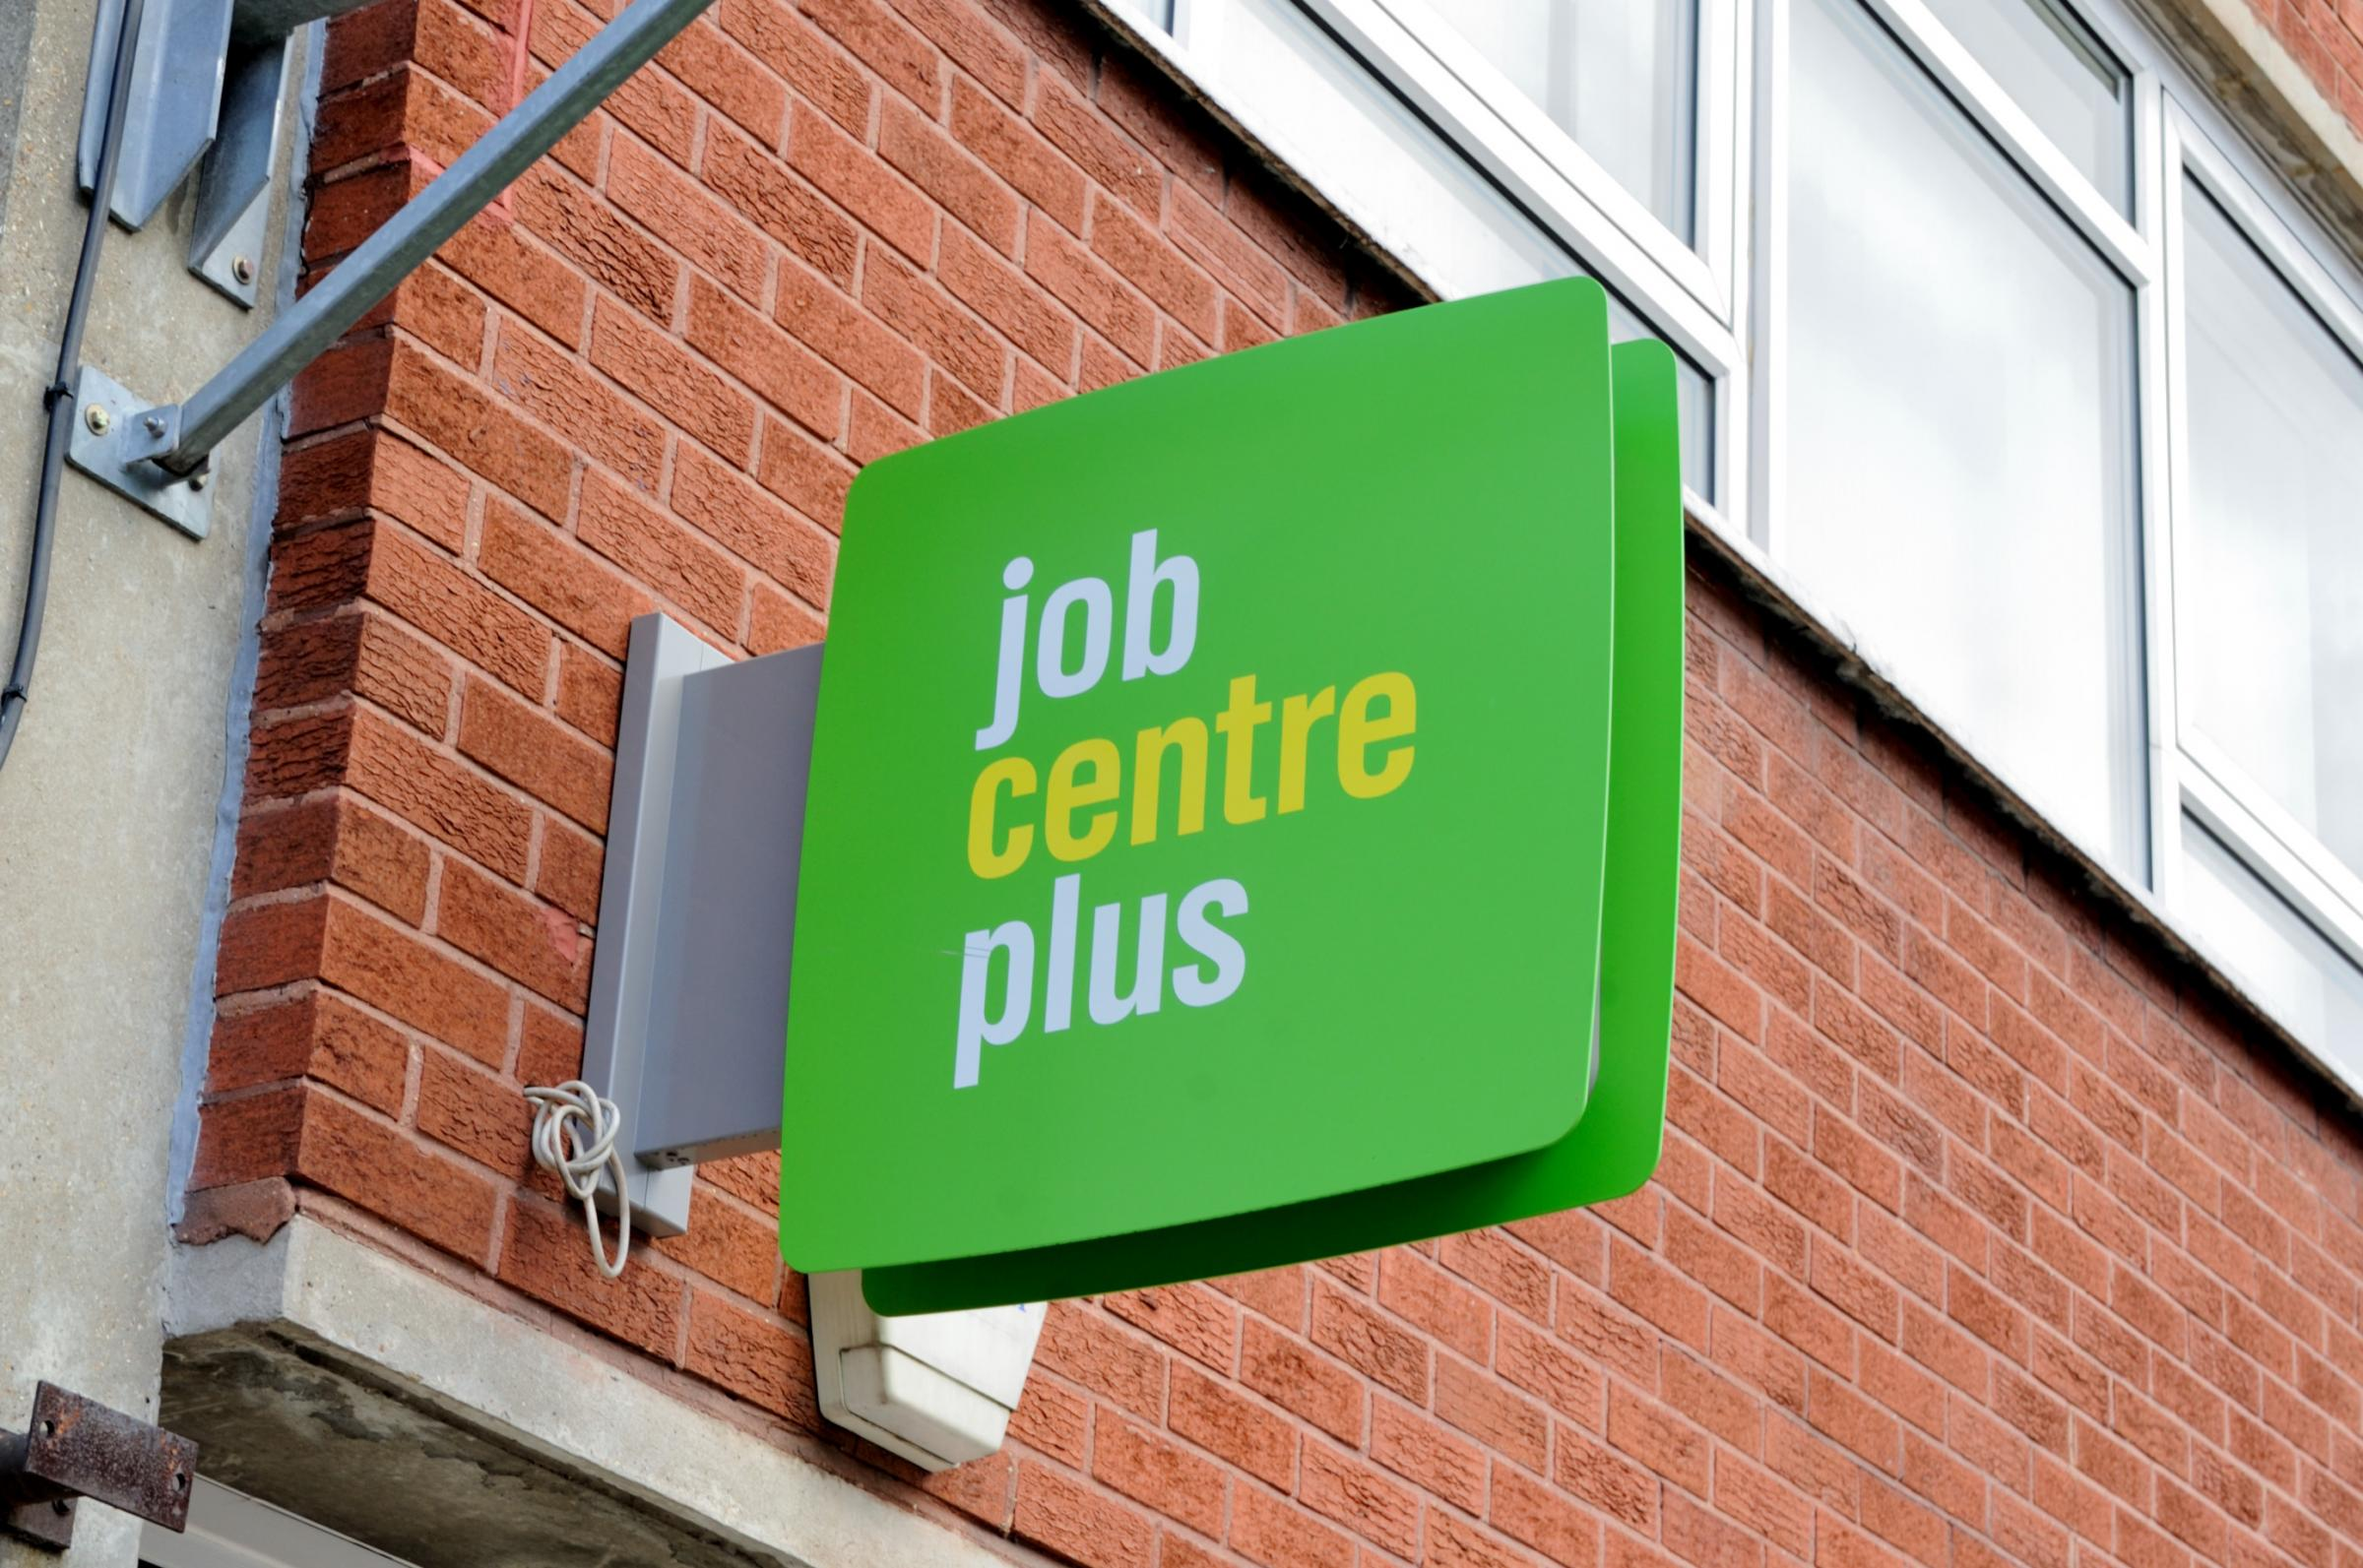 BE93853..14/10/15..Westminster House 186 - 194, Broadway, DA6 7BB..Site shots of the job centre please to be used with article about DWP and those signing onto JSA. ..Copyright: Simon Hildrew/Newsquest.